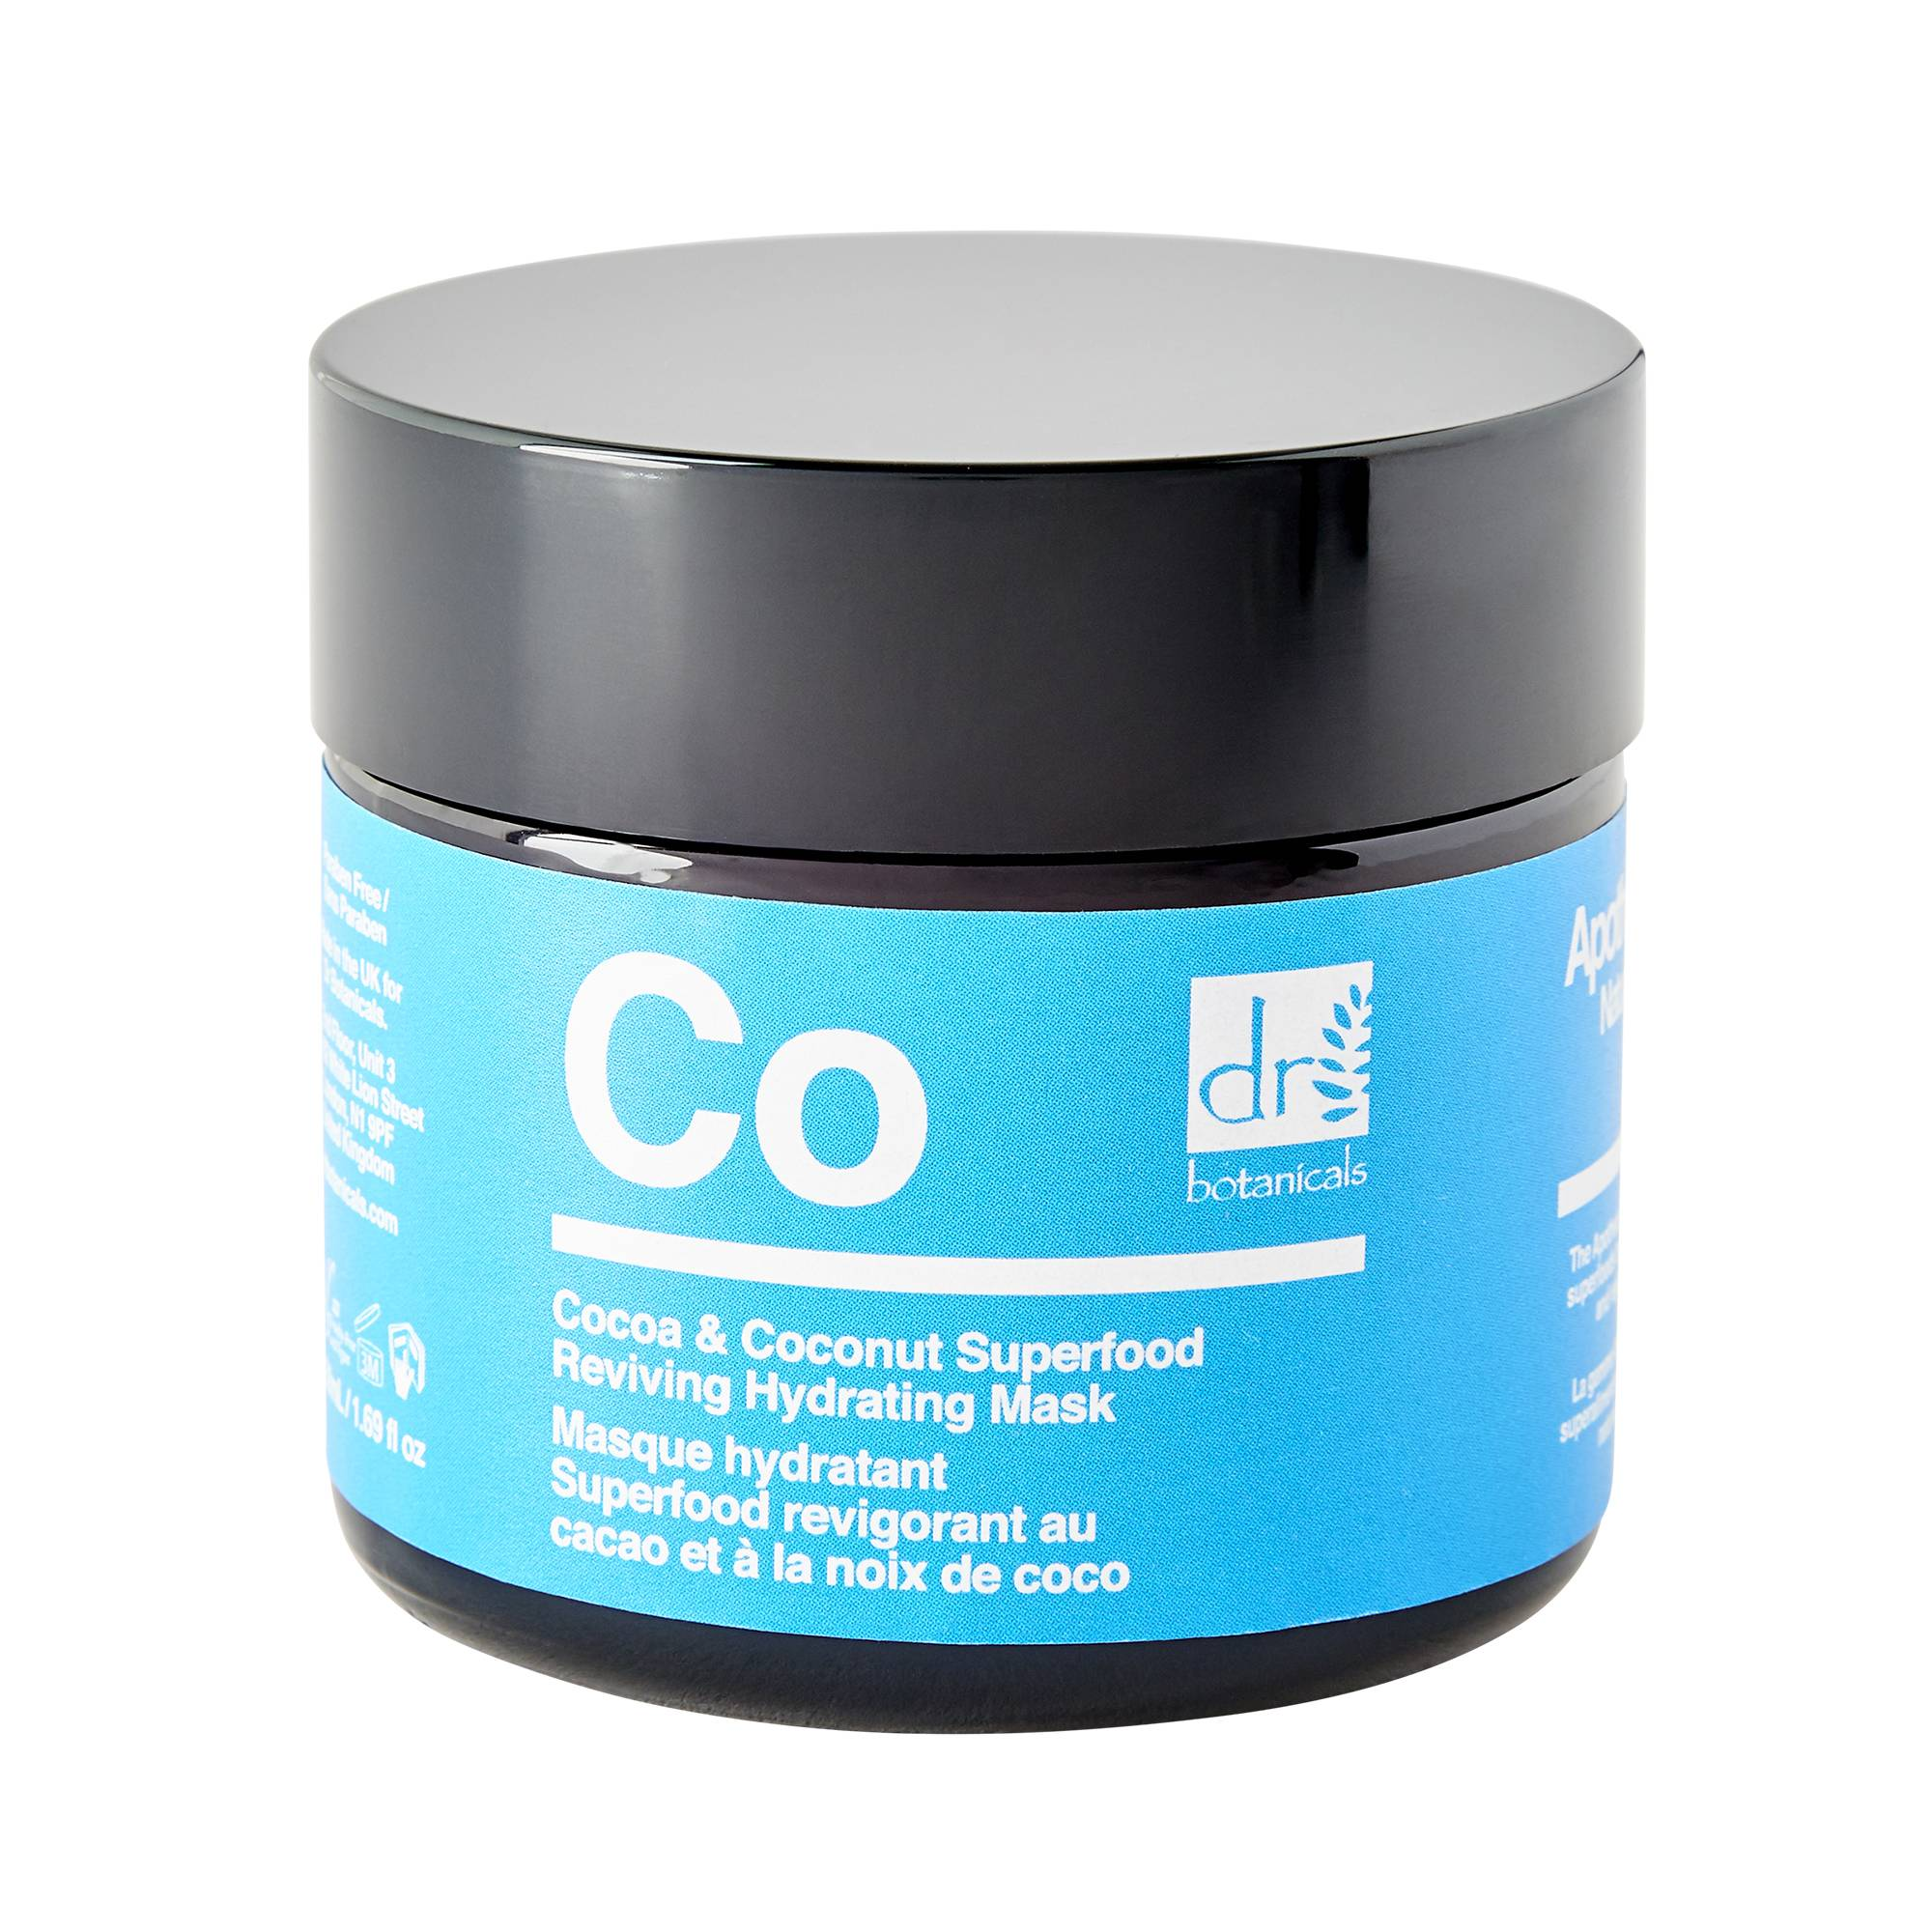 Dr. Botanicals Cocoa And Coconut Superfood Reviving Hydrating Mask 50ml